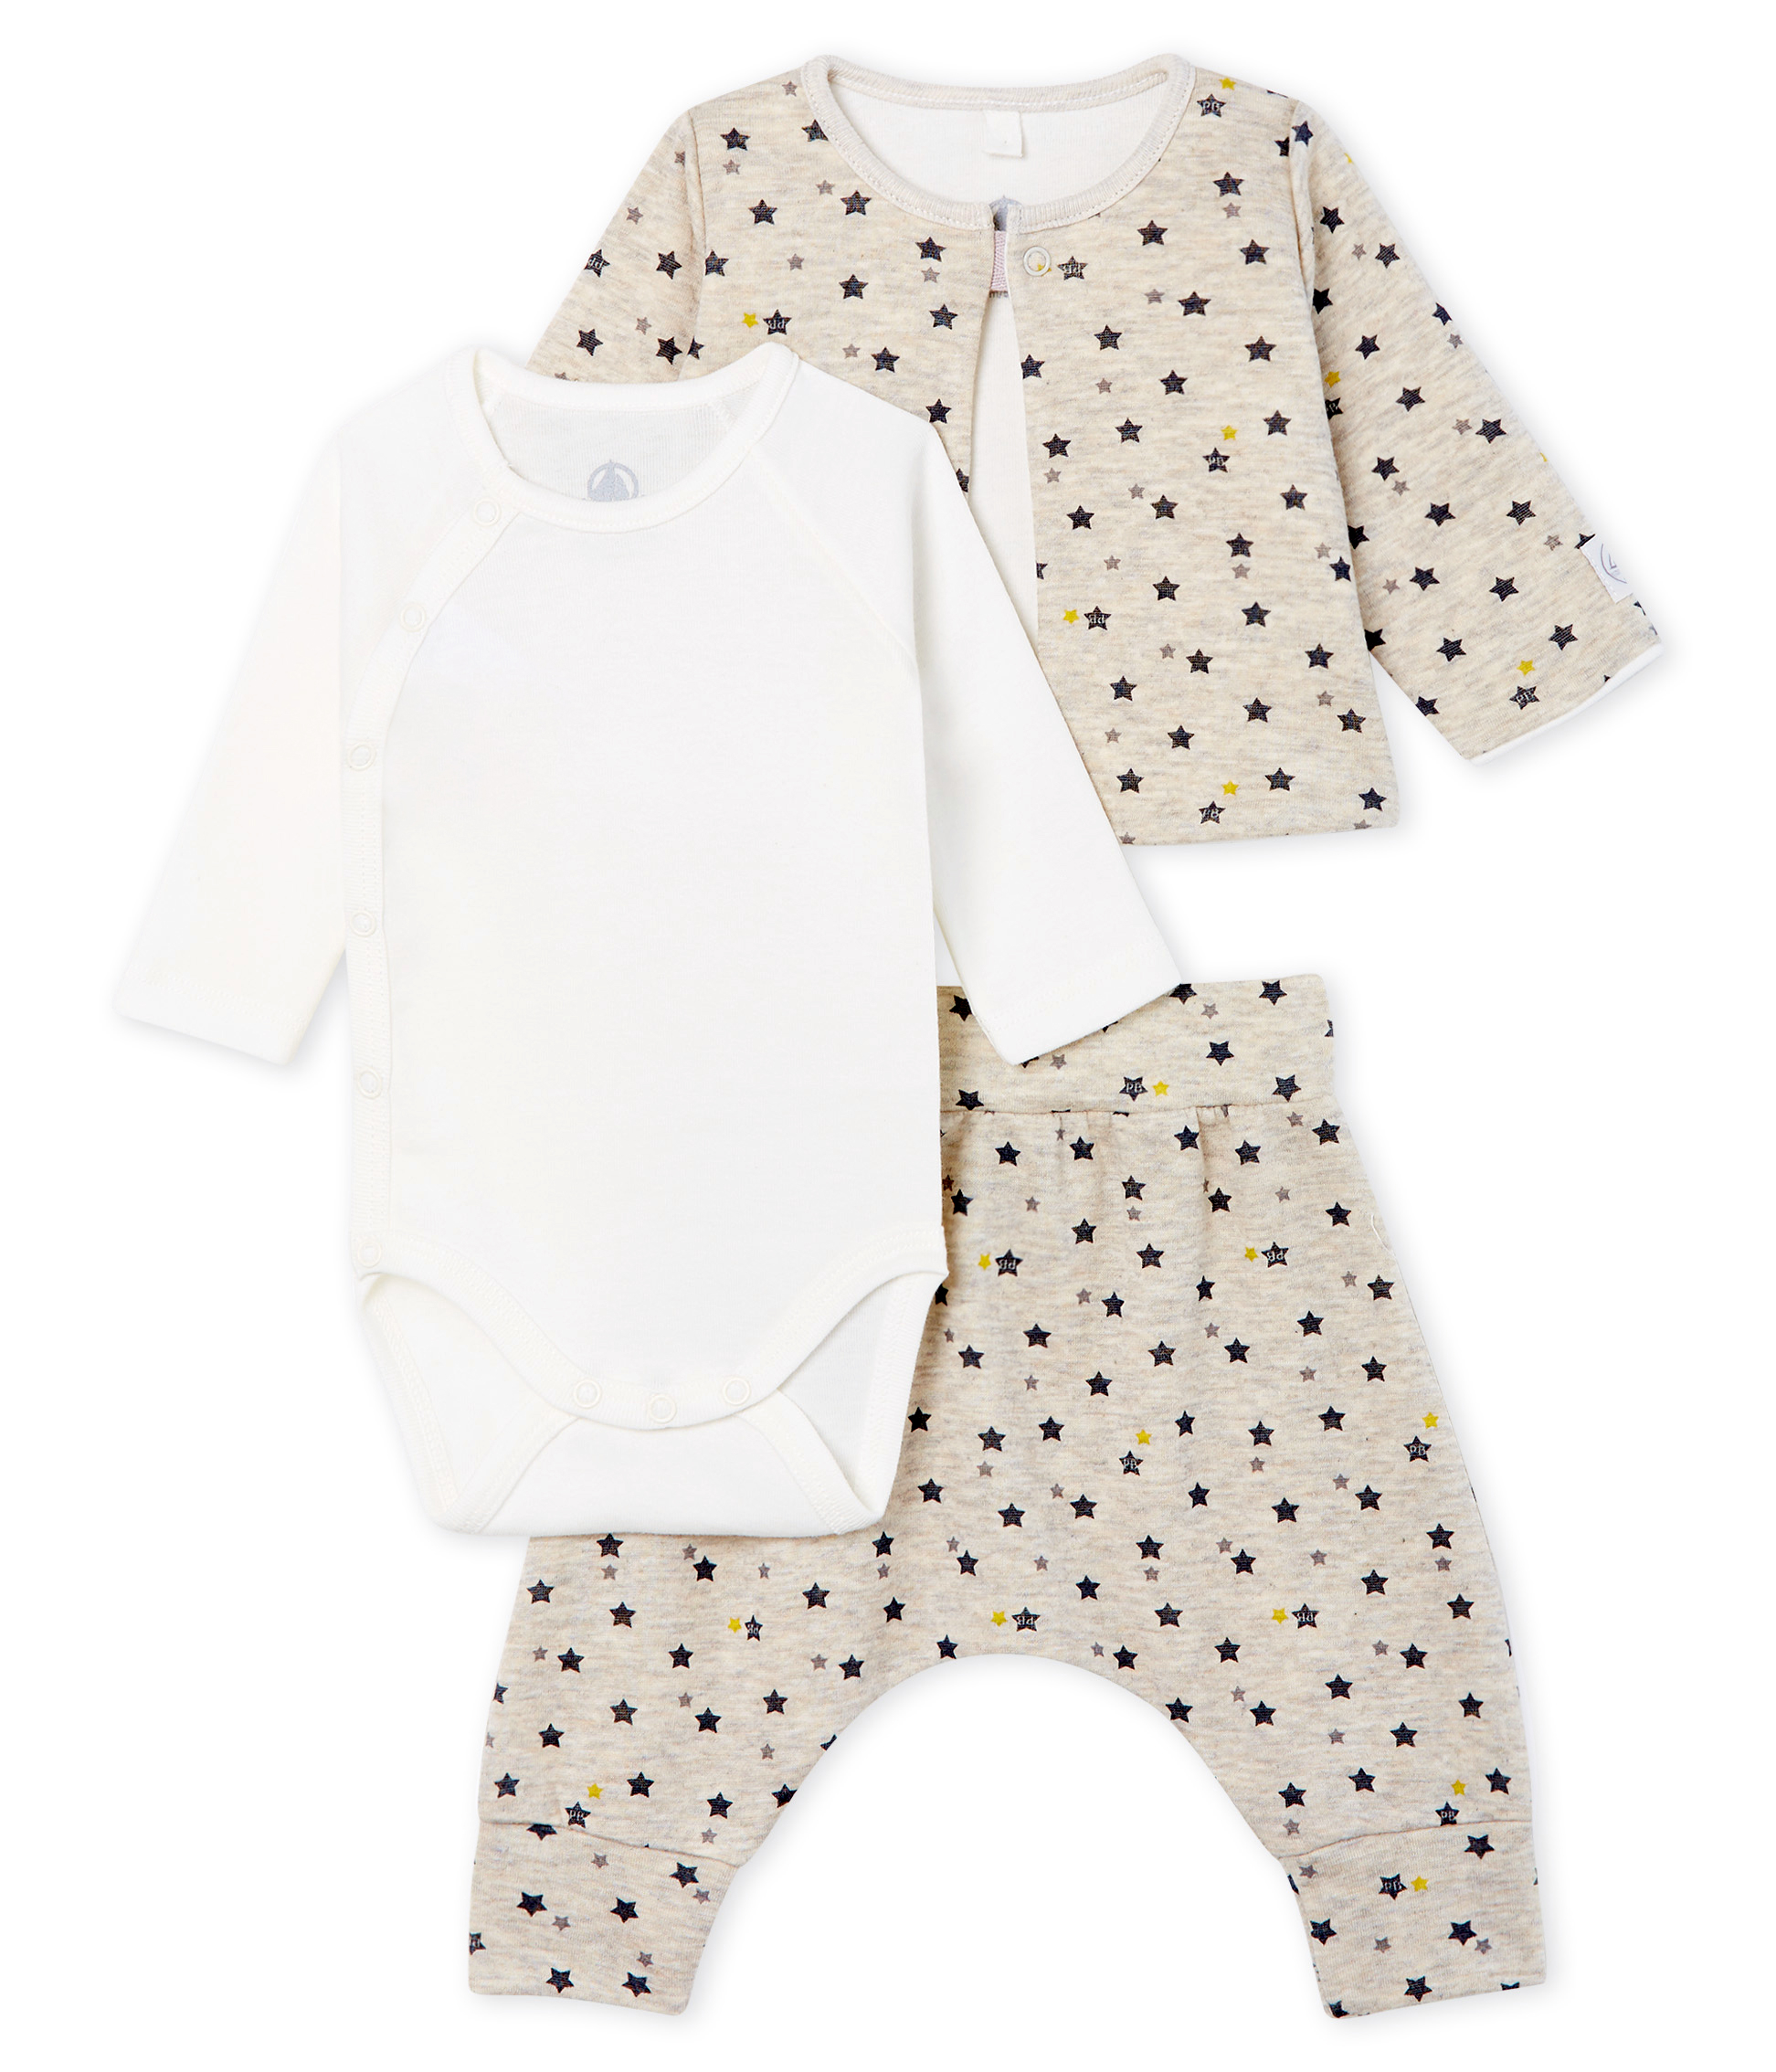 Baby Boys' Wool/Cotton Clothing - 3-piece set